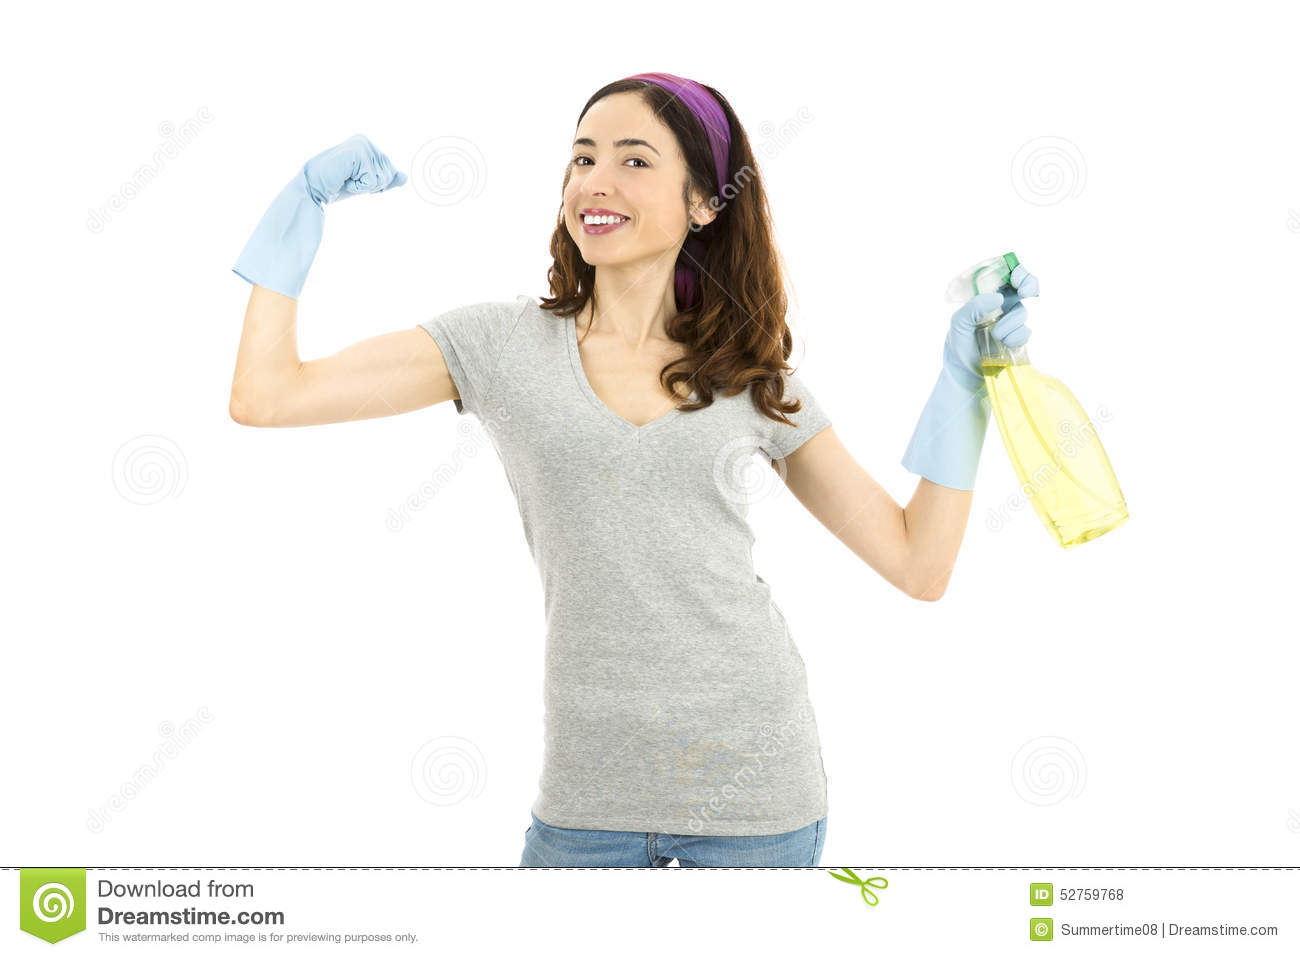 Cleaning lady with strong arms and holdig a spray bottle.